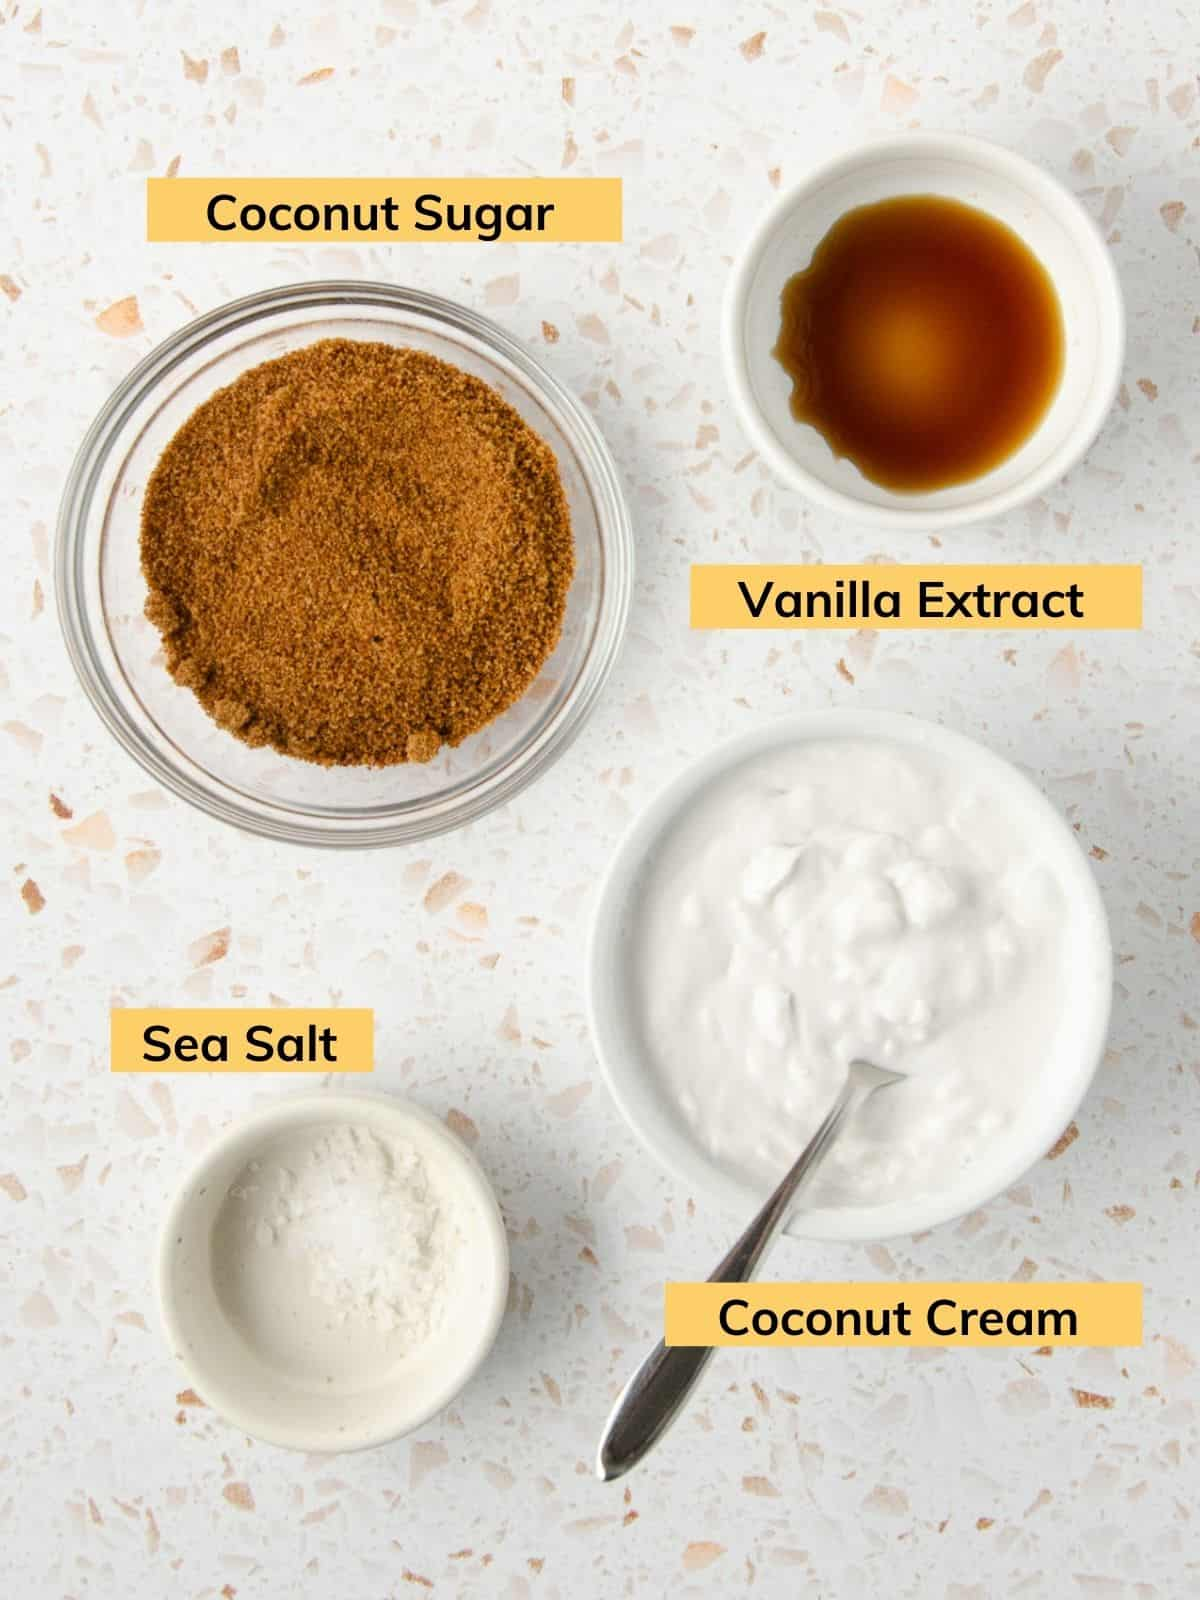 Ingredients for vegan salted caramel: a bowl of coconut sugar, a bowl of vanilla extract, a bowl of coconut cream, and a bowl of sea salt.